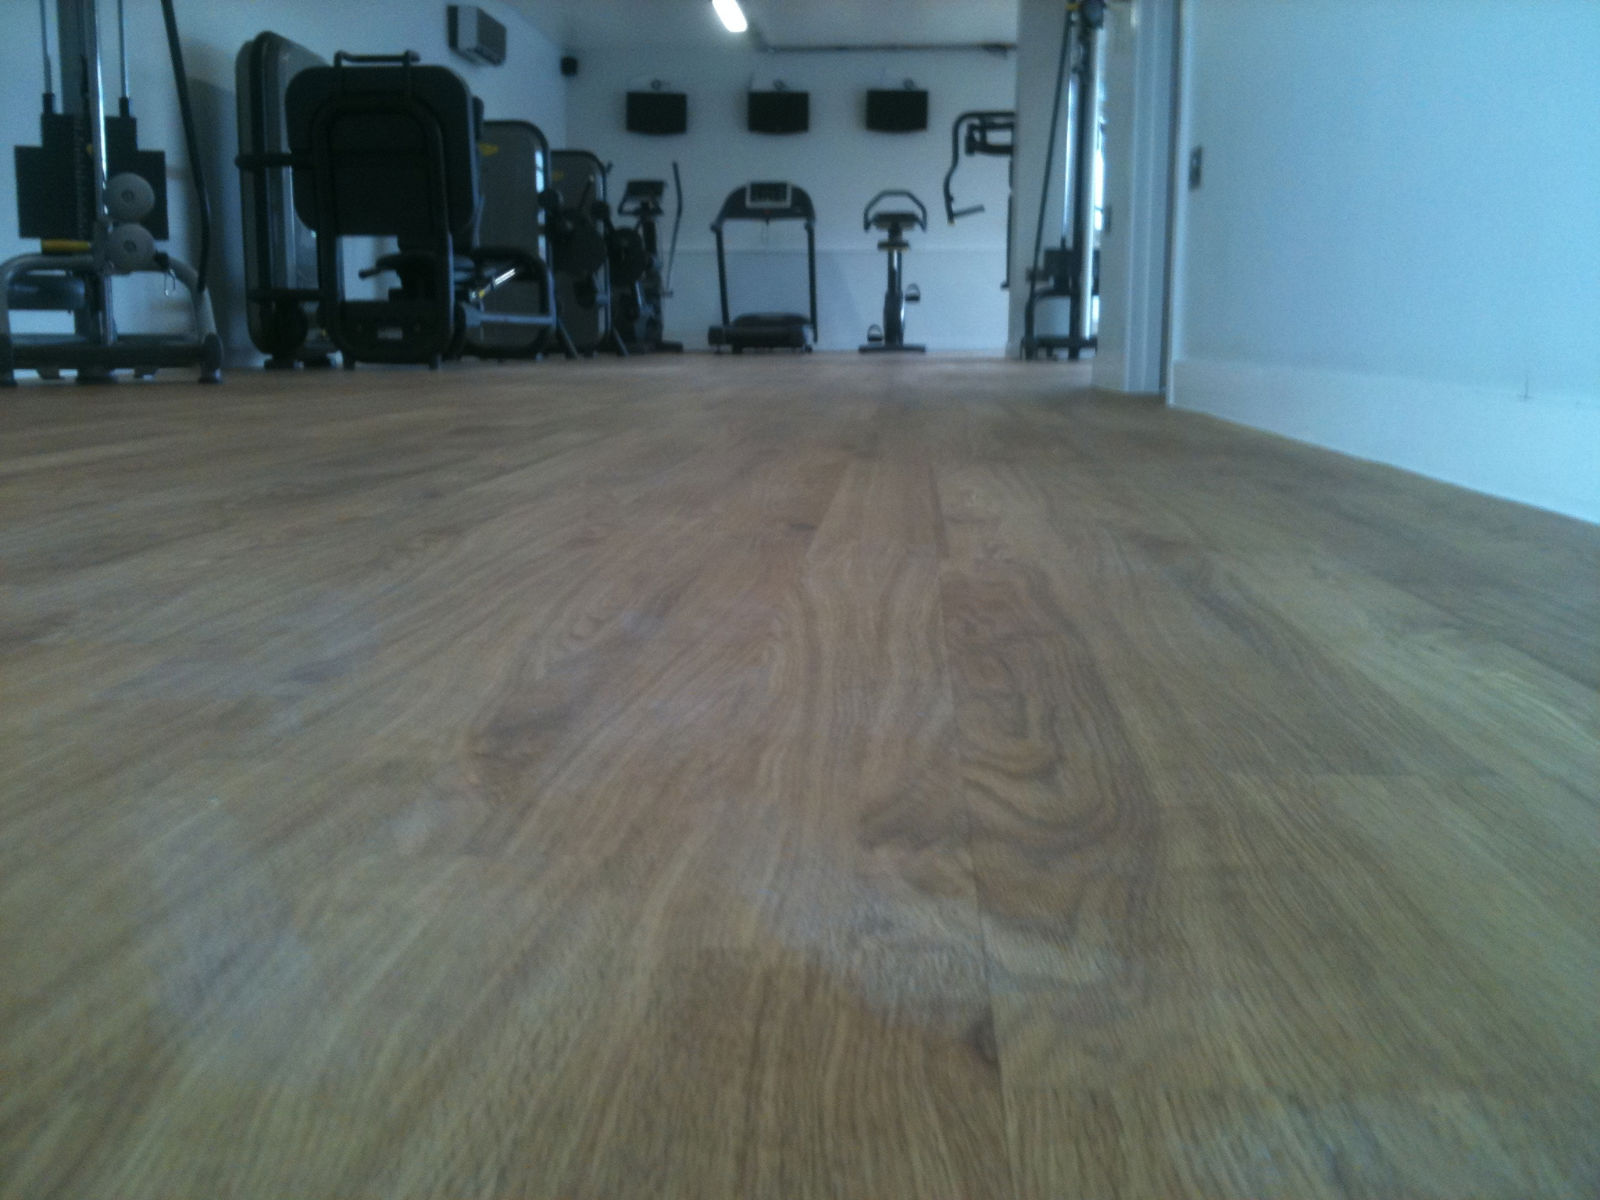 Gym Flooring High Quality Gym Flooring